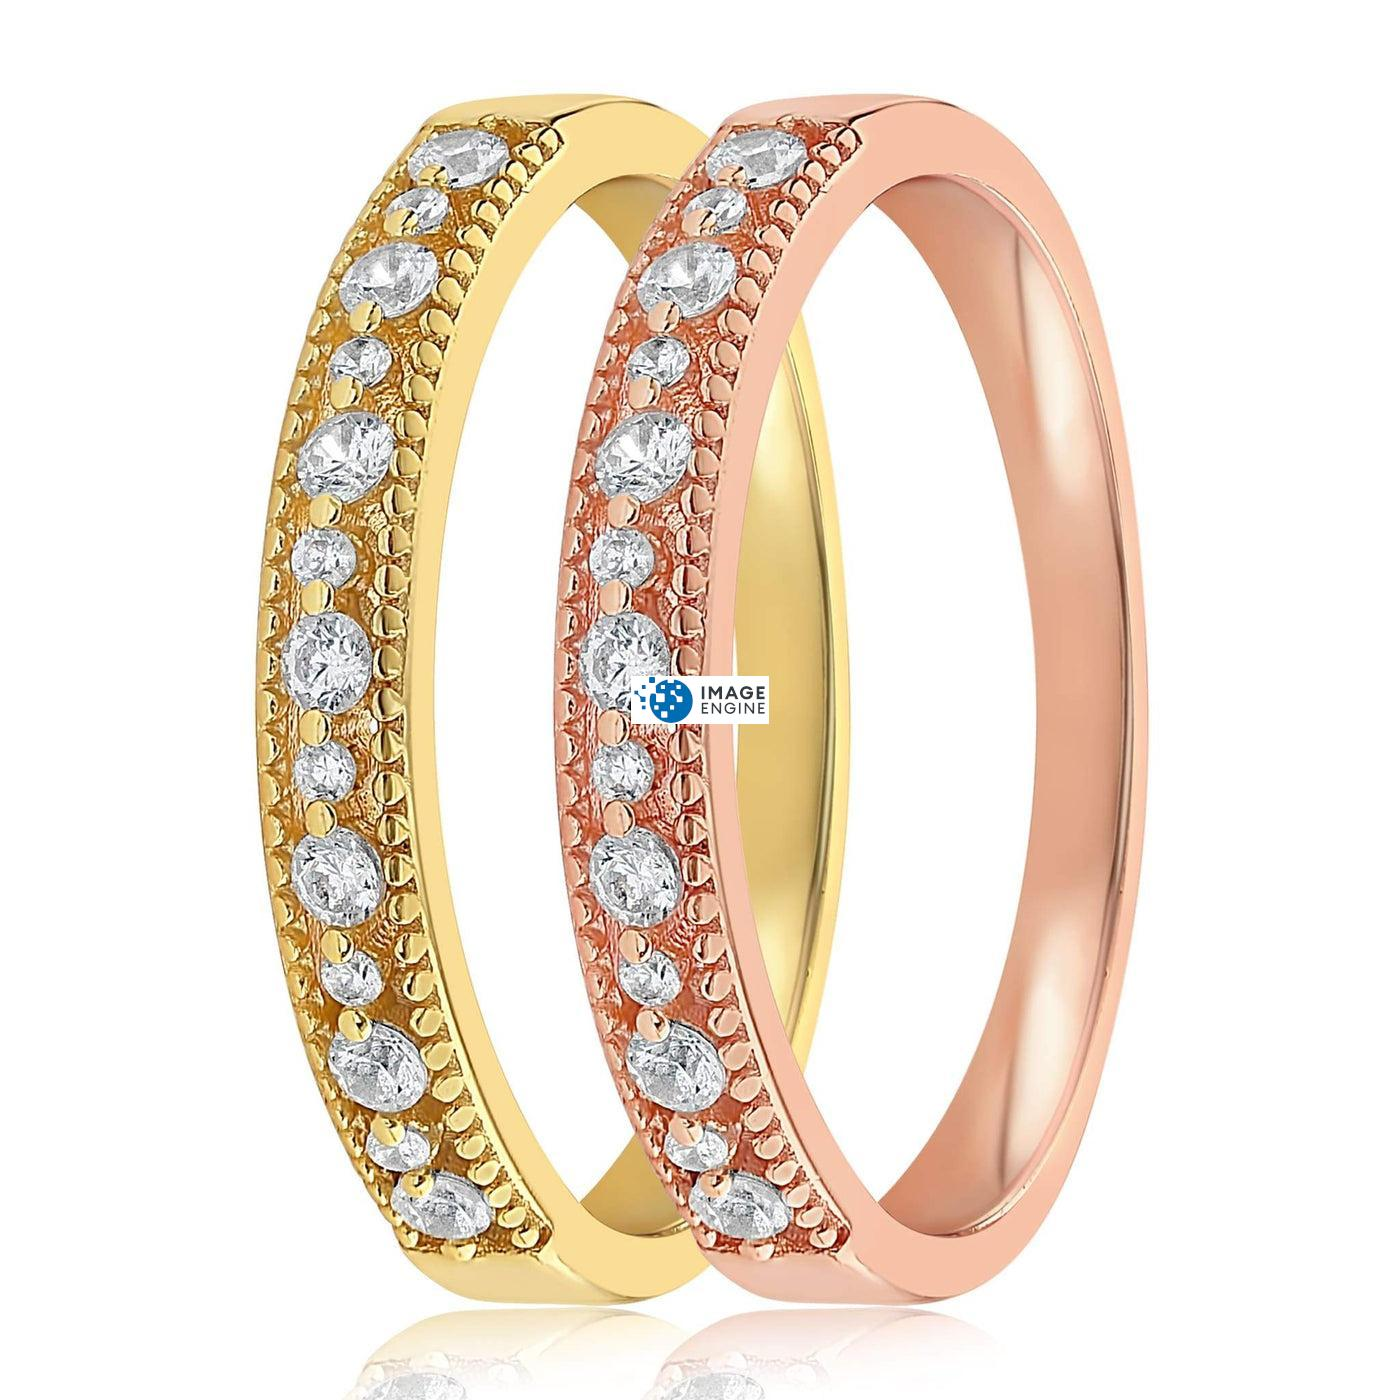 Joyce Layered Stack Ring - Side by Side - 18K Yellow Gold Vermeil and 18K Rose Gold Vermeil